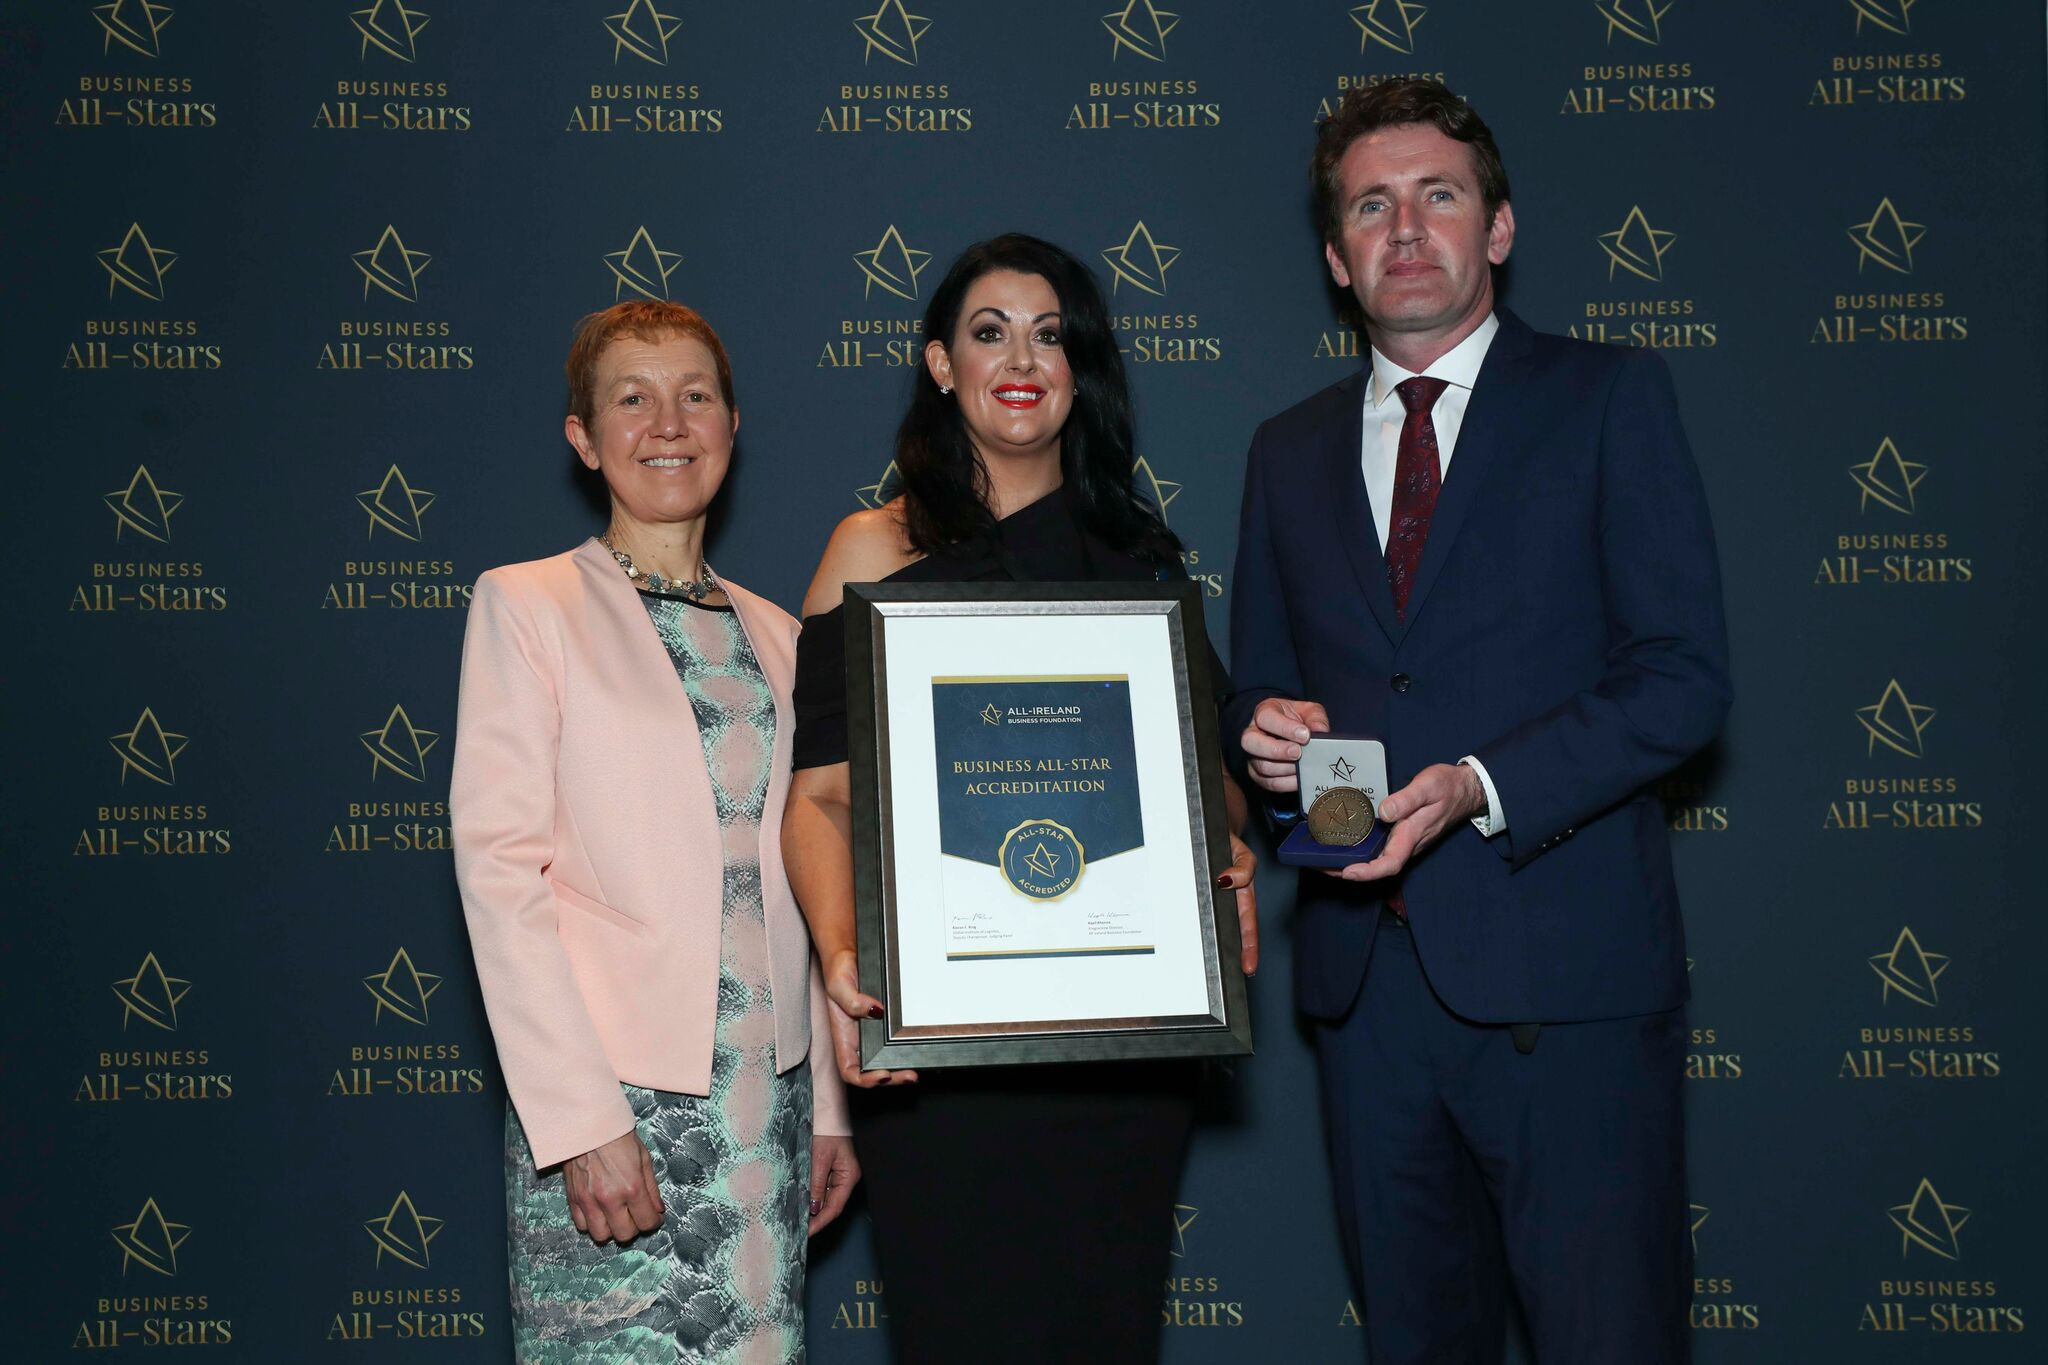 Bridgeen King - Bridgeen King Hair Dressing Hair Loss Clinic receiving Business All-Star Accreditation at Croke Park from Dr Briga Hynes, Kemmy Business School, University of Limerick and Senator Aodhán Ó Ríordáin, Spokesperson on Education and Skills, Gaeilge and the Gaeltacht.